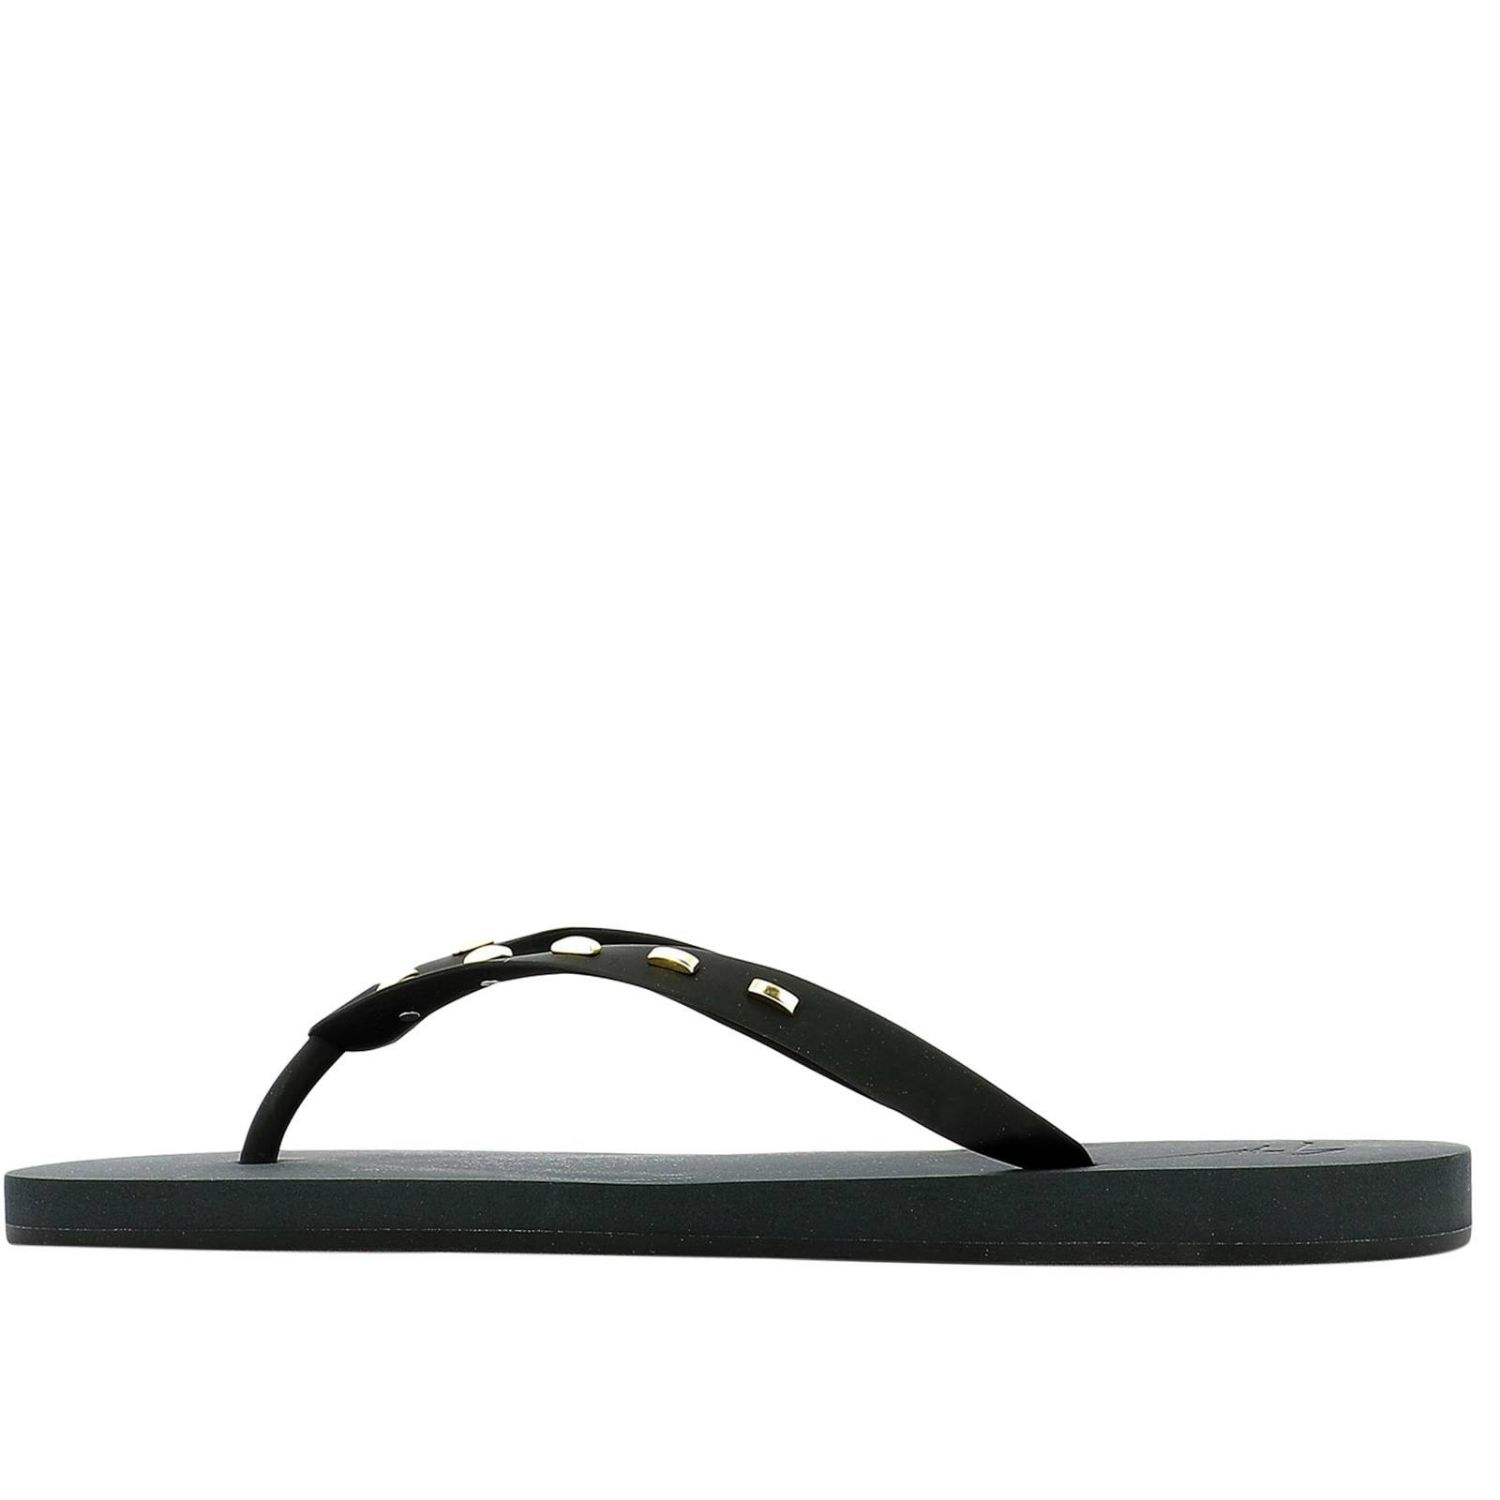 Sandals men Giuseppe Zanotti Design black 4